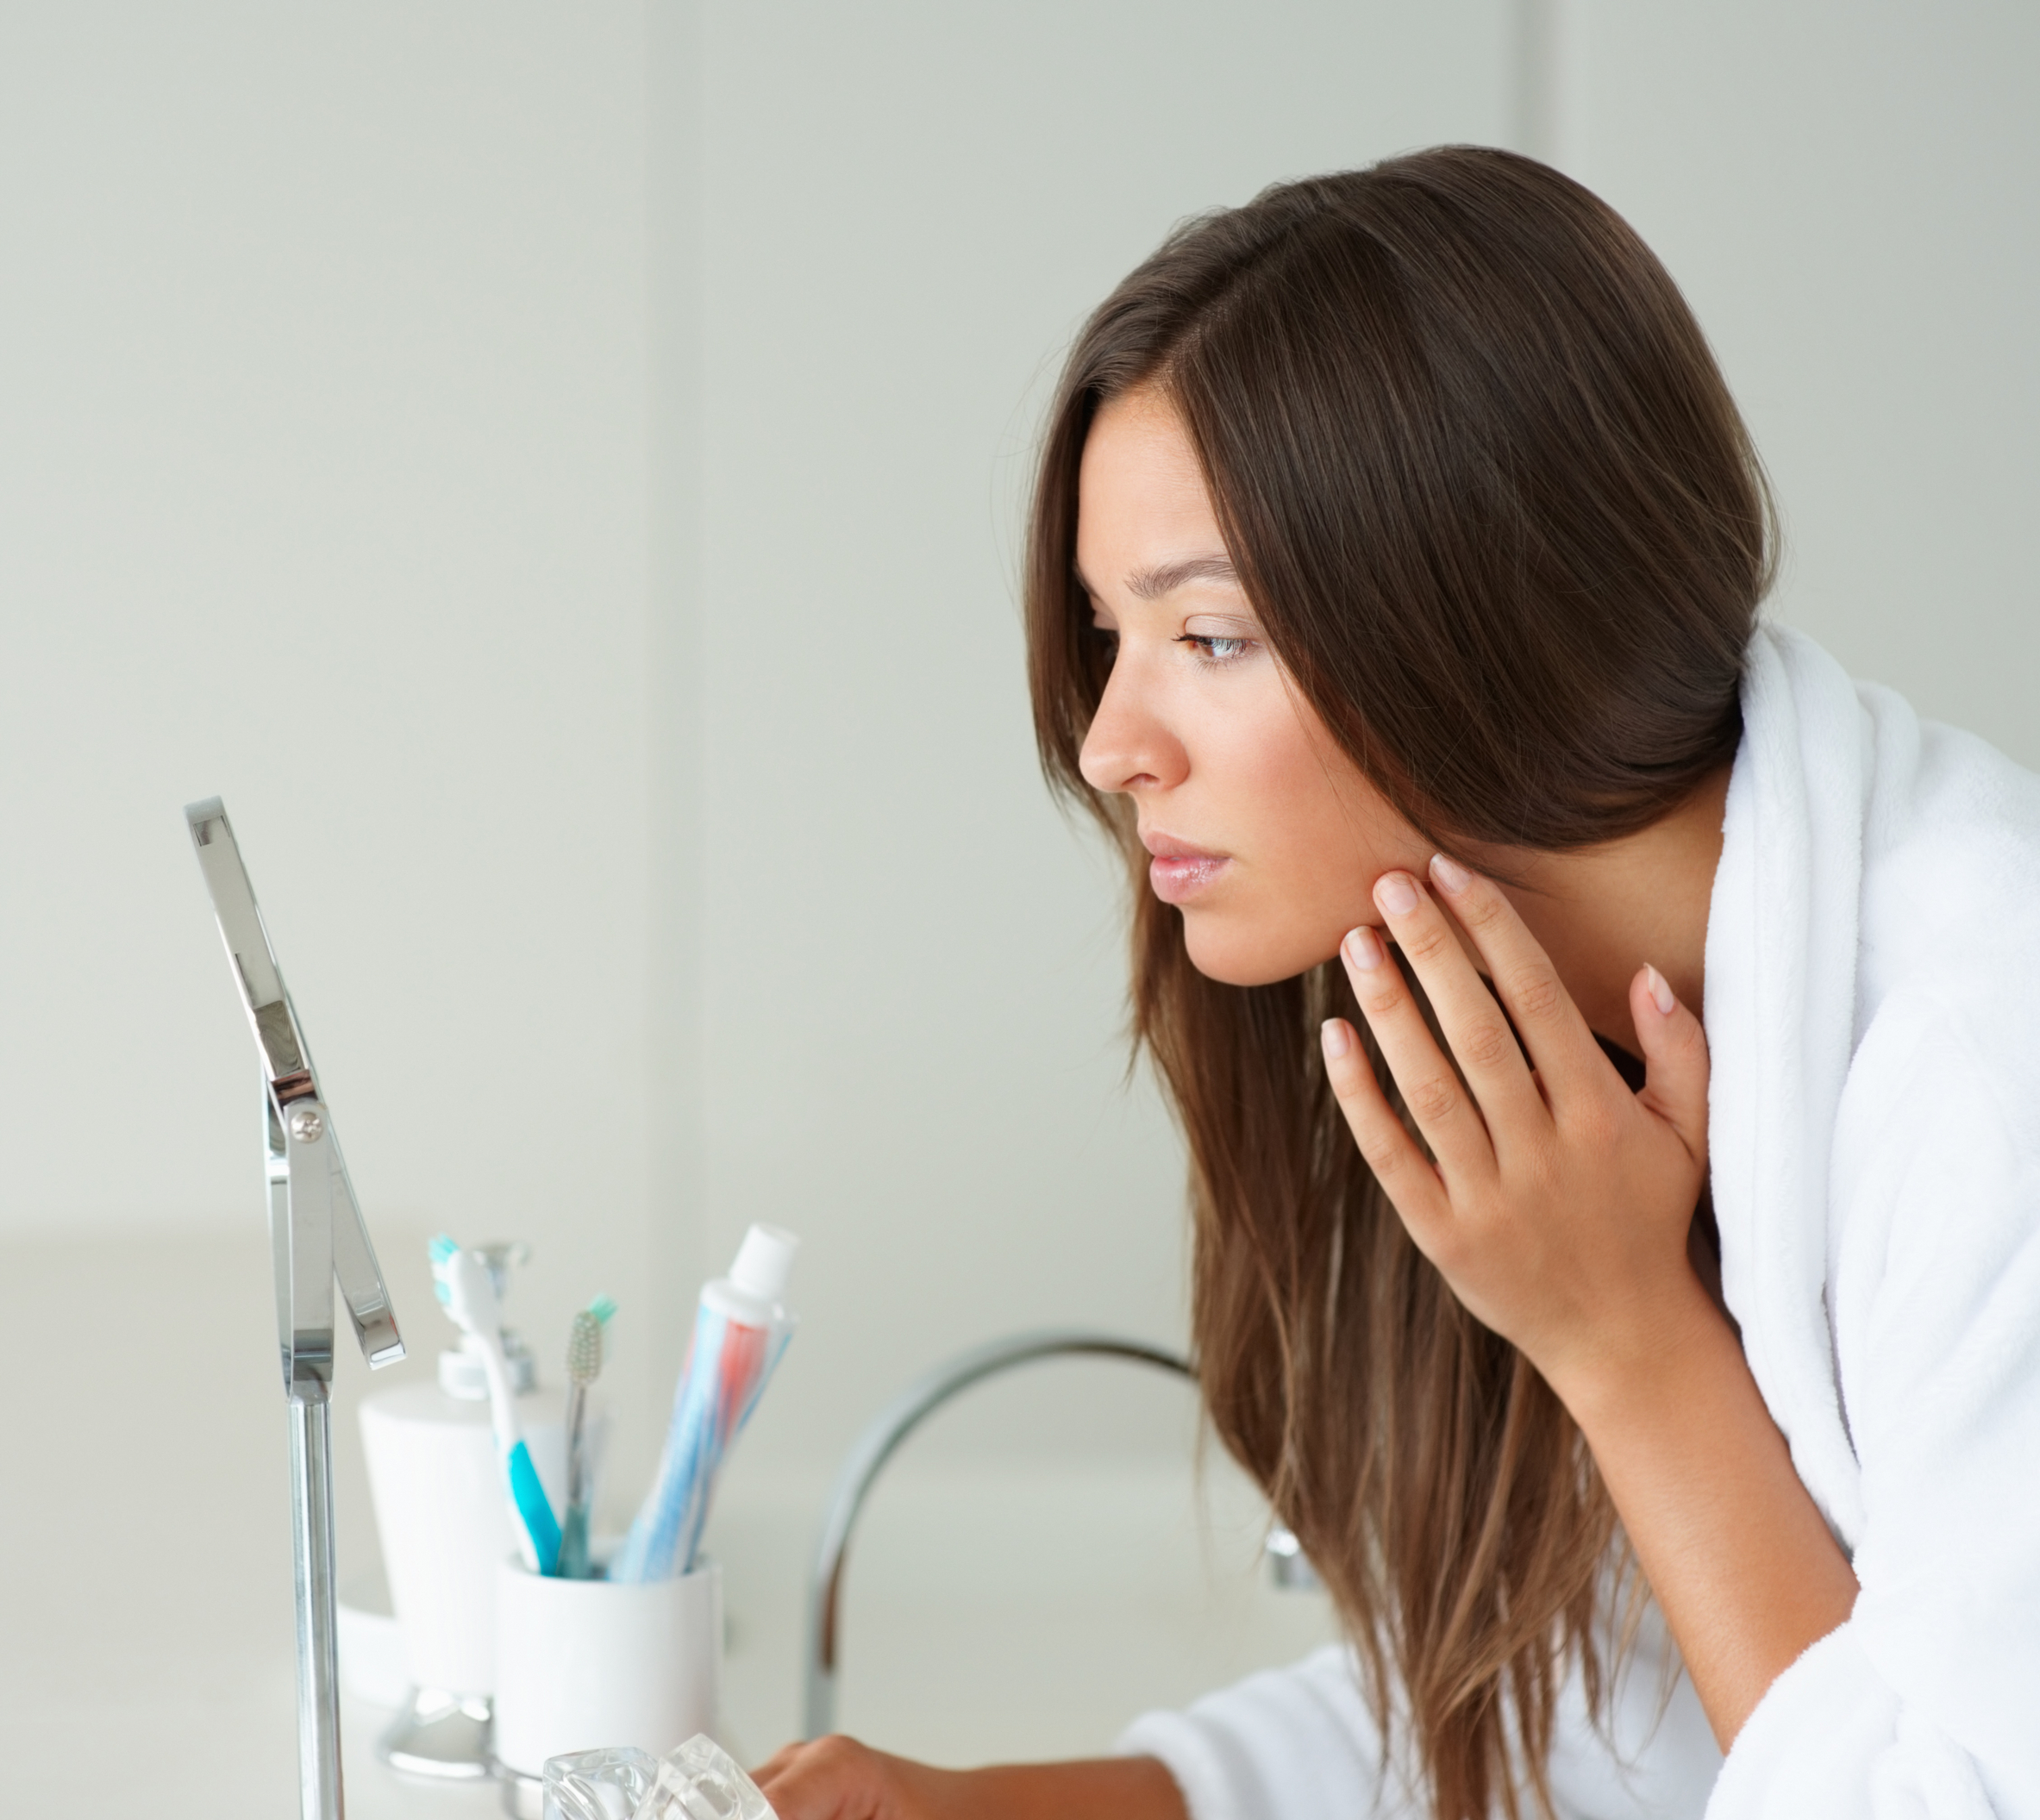 hpv vaccine cures skin cancer